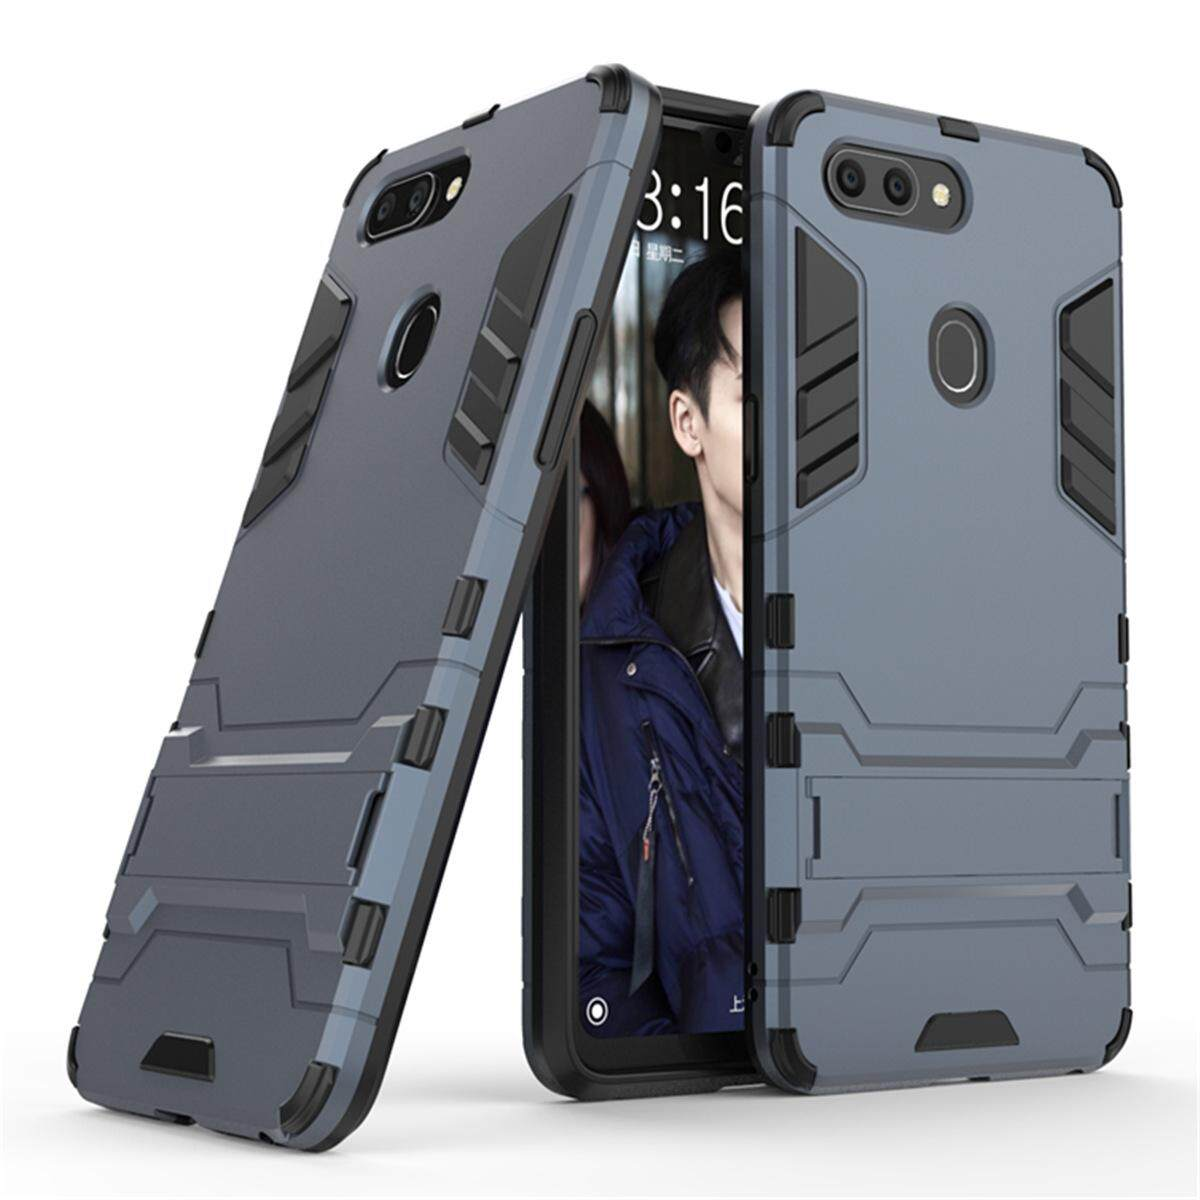 Hình ảnh for OPPO R15 Case 2in1 PC+TPU Hybrid Slim Back Case Ultra Thin Armor Cover, with Kickstand Holder, Glossy, Minimalist, Casual